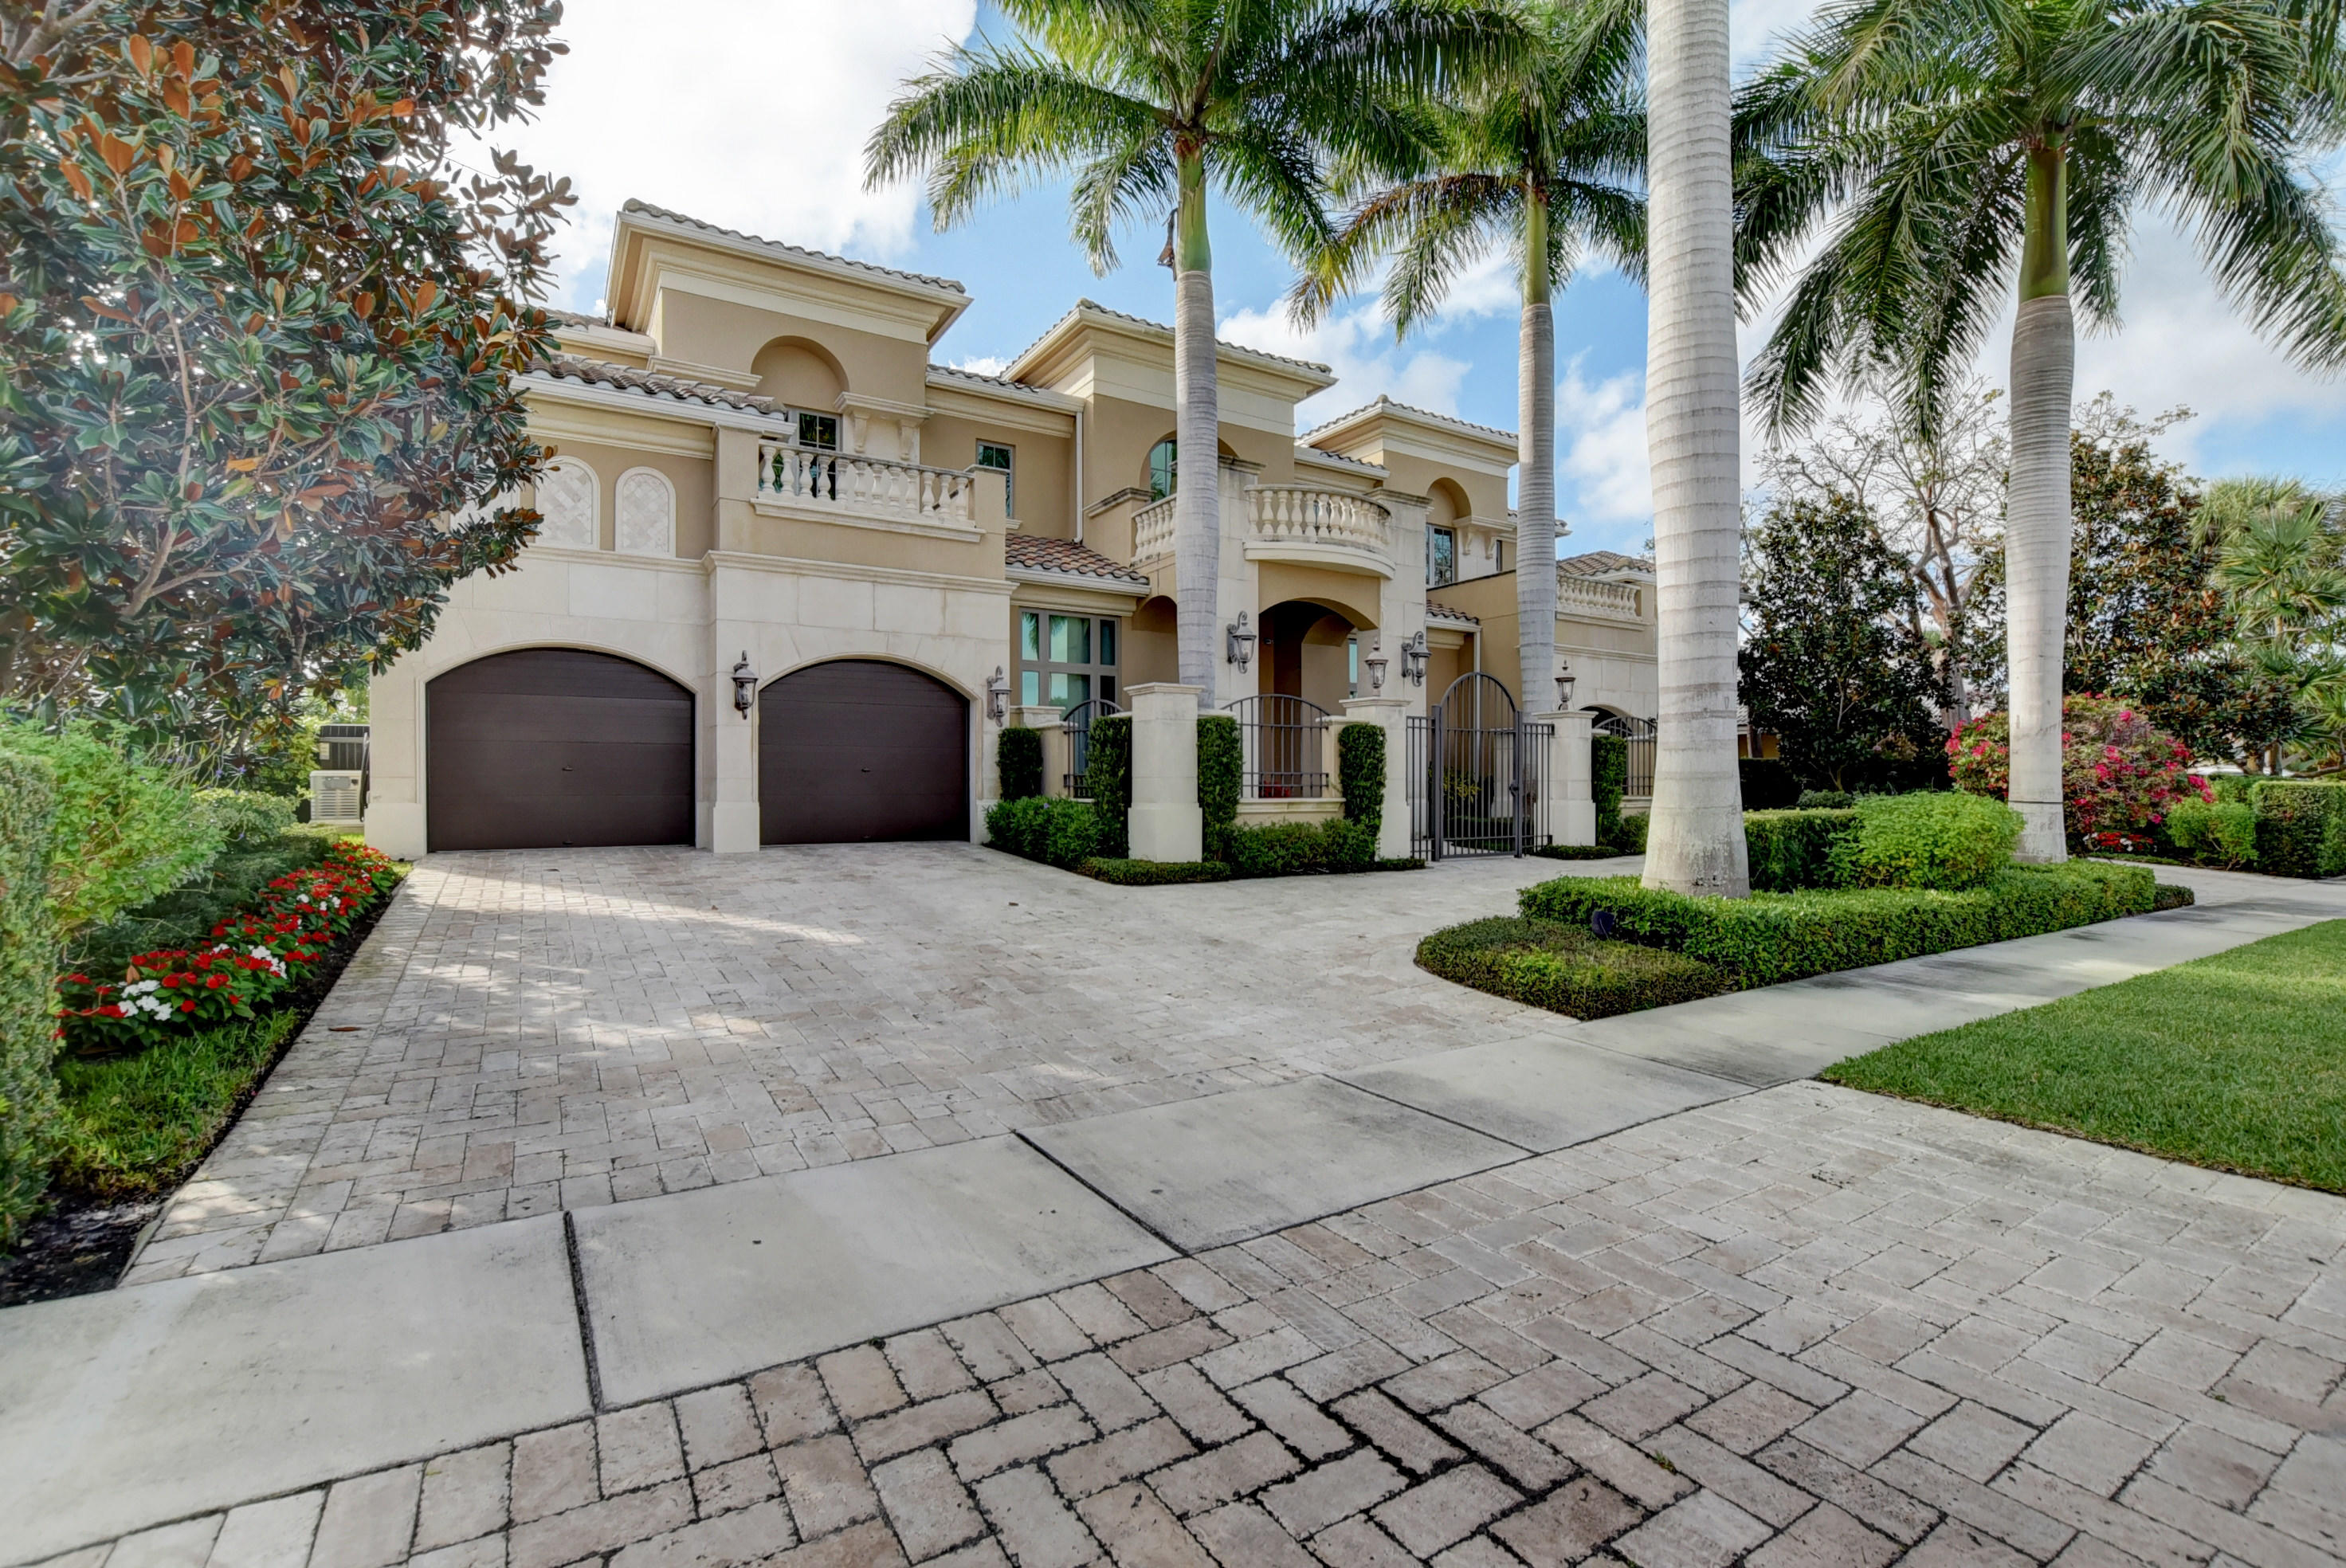 DELAIRE DELRAY BEACH REAL ESTATE